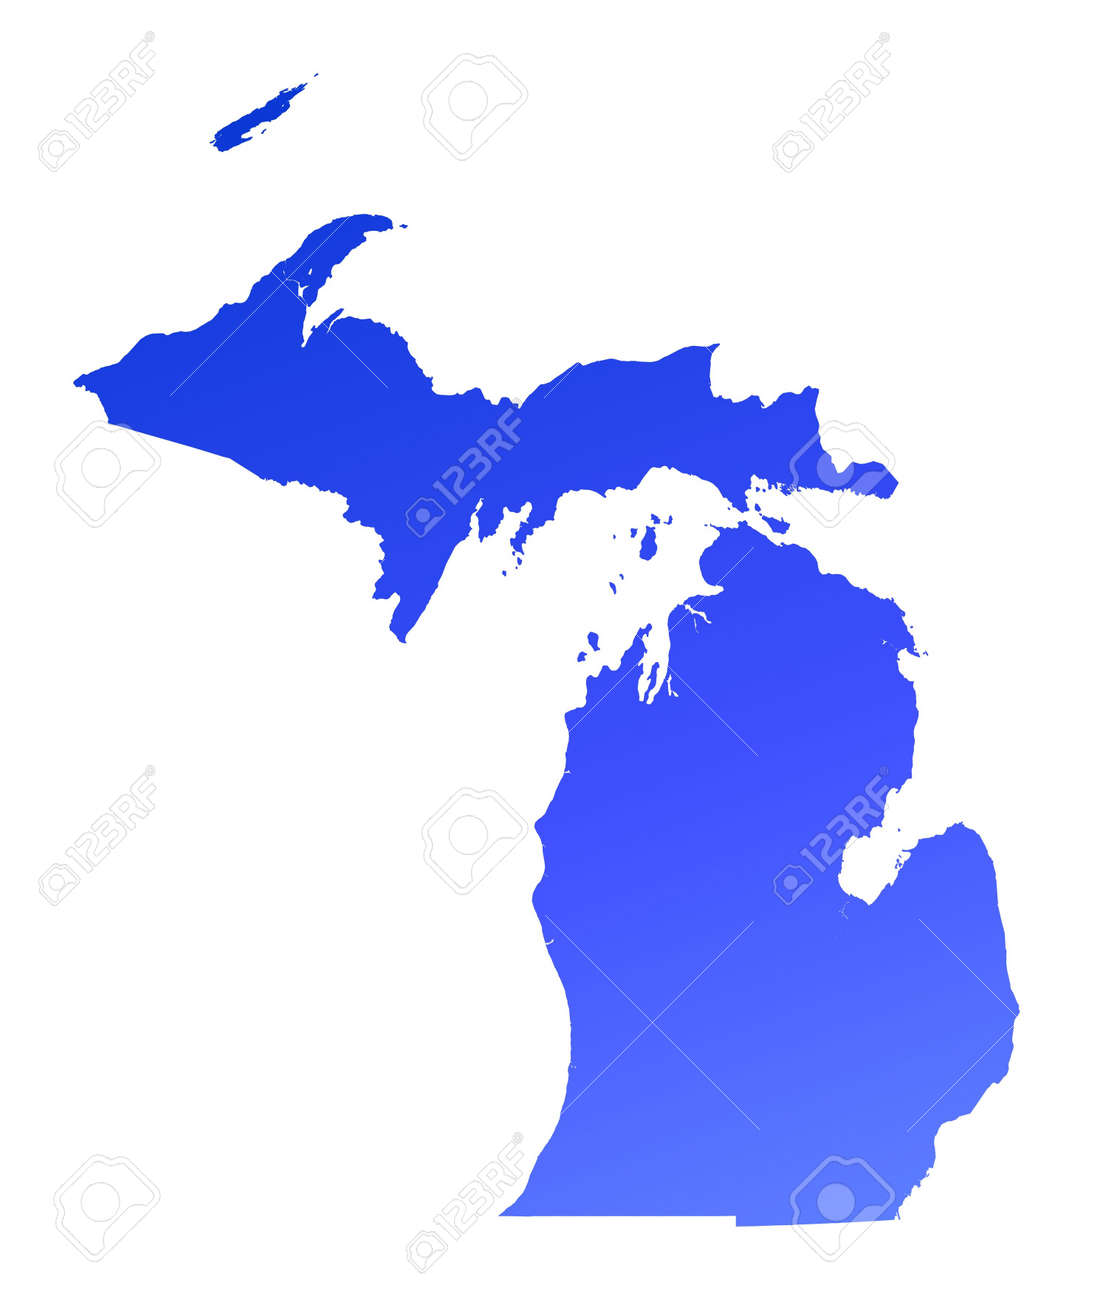 Detailed Michigan Map.Blue Gradient Michigan Map Usa Detailed Mercator Projection